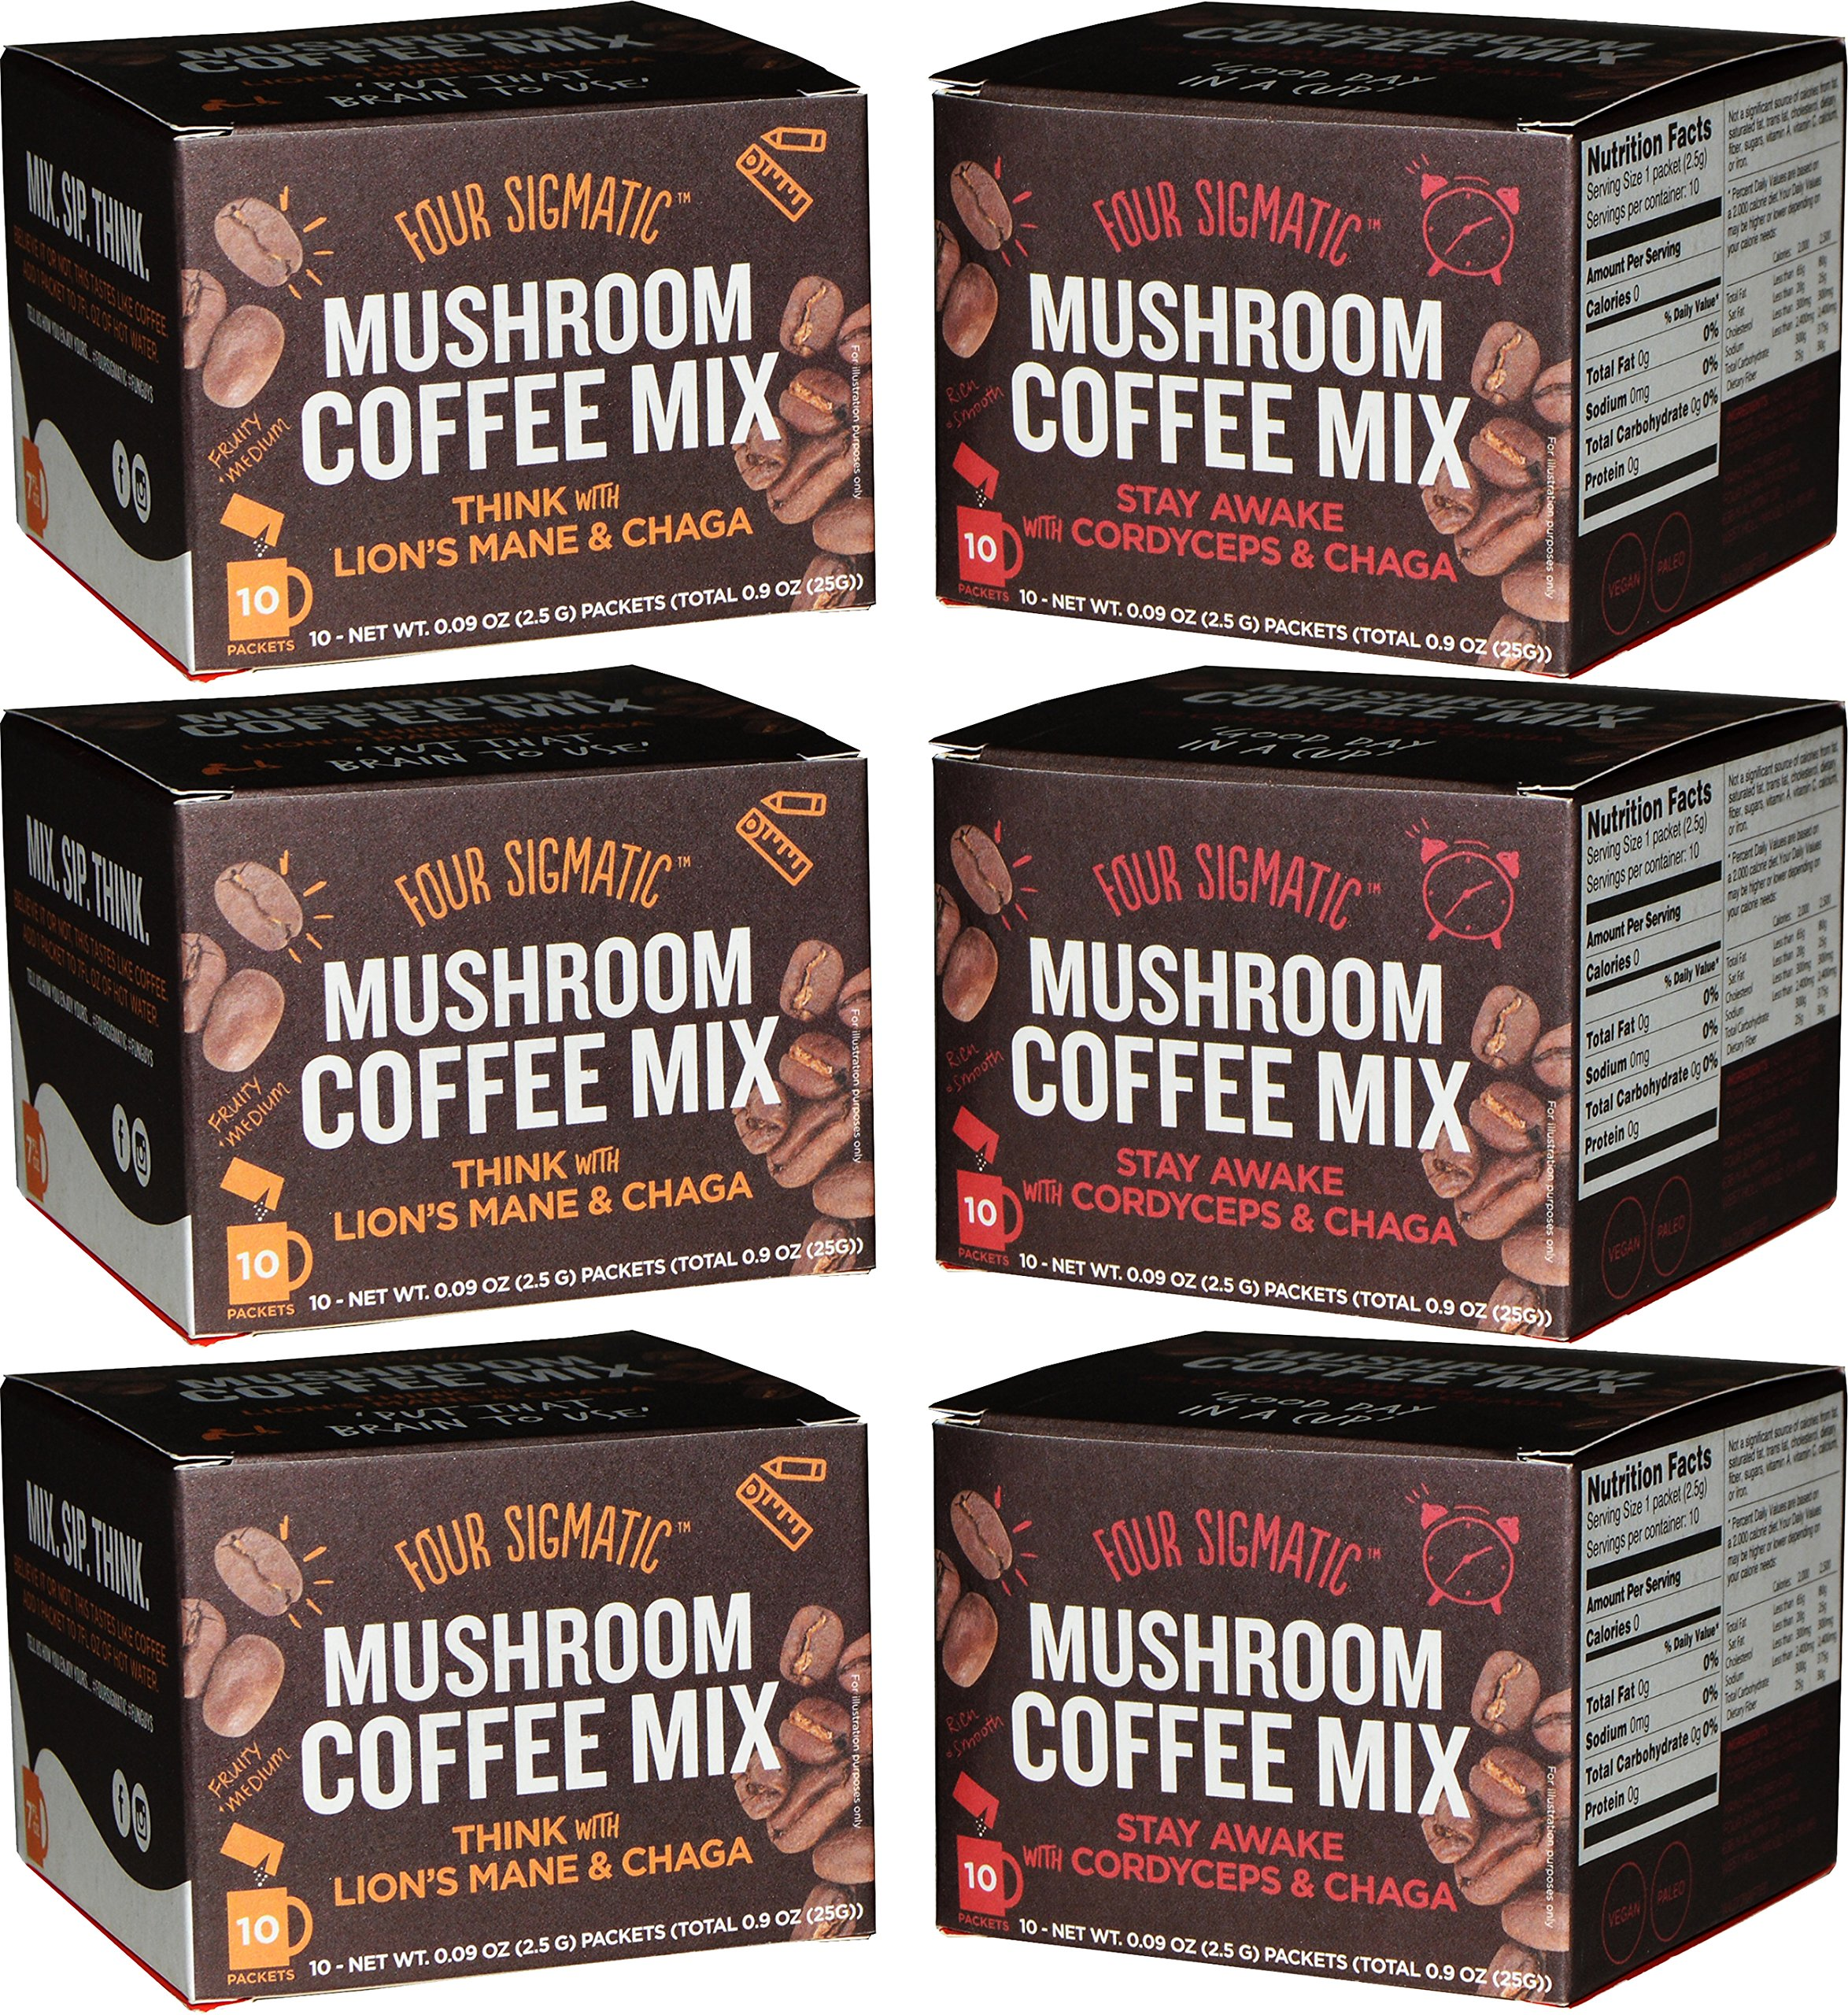 Four Sigmatic Mushroom Coffee Mix Pack of 6 - Lion's Mane and Chaga & Cordyceps and Chaga by Four Sigmatic